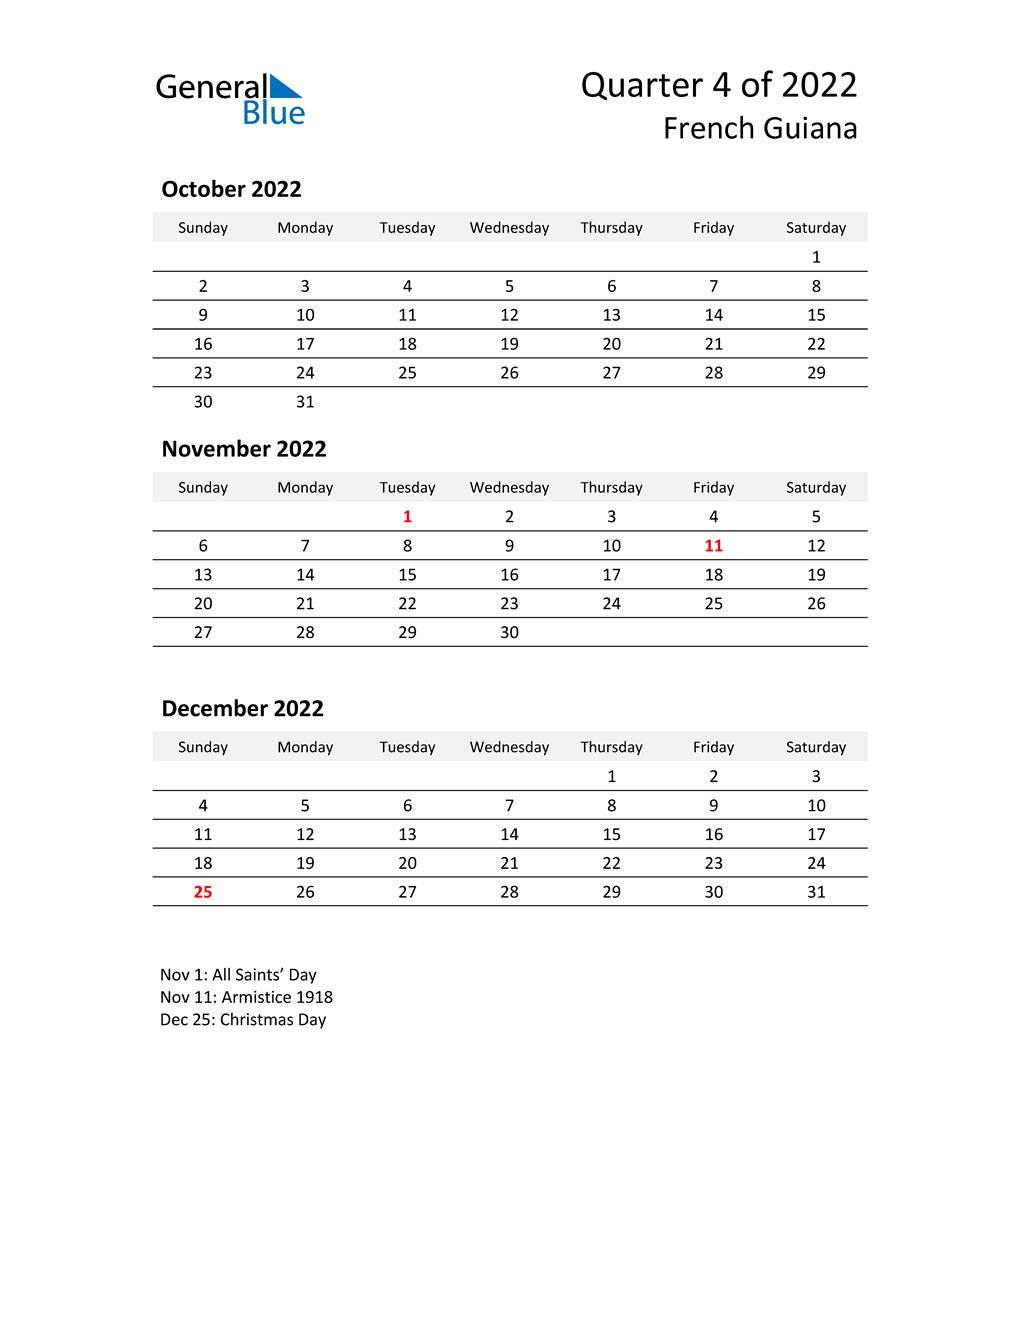 2022 Three-Month Calendar for French Guiana